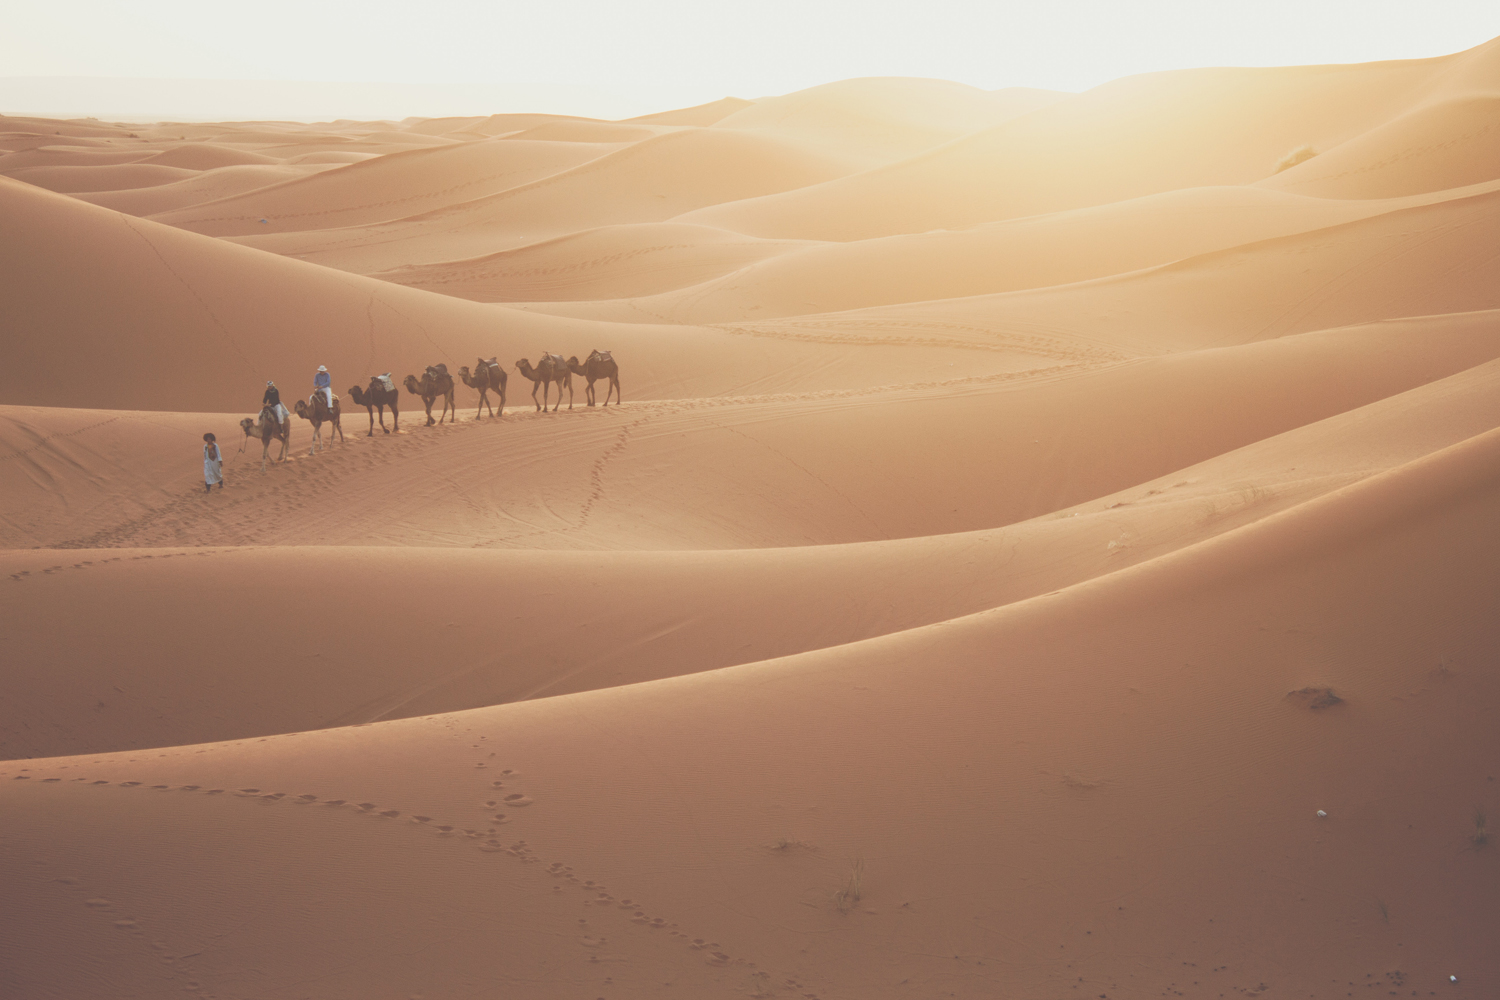 camels desert people walking tracks